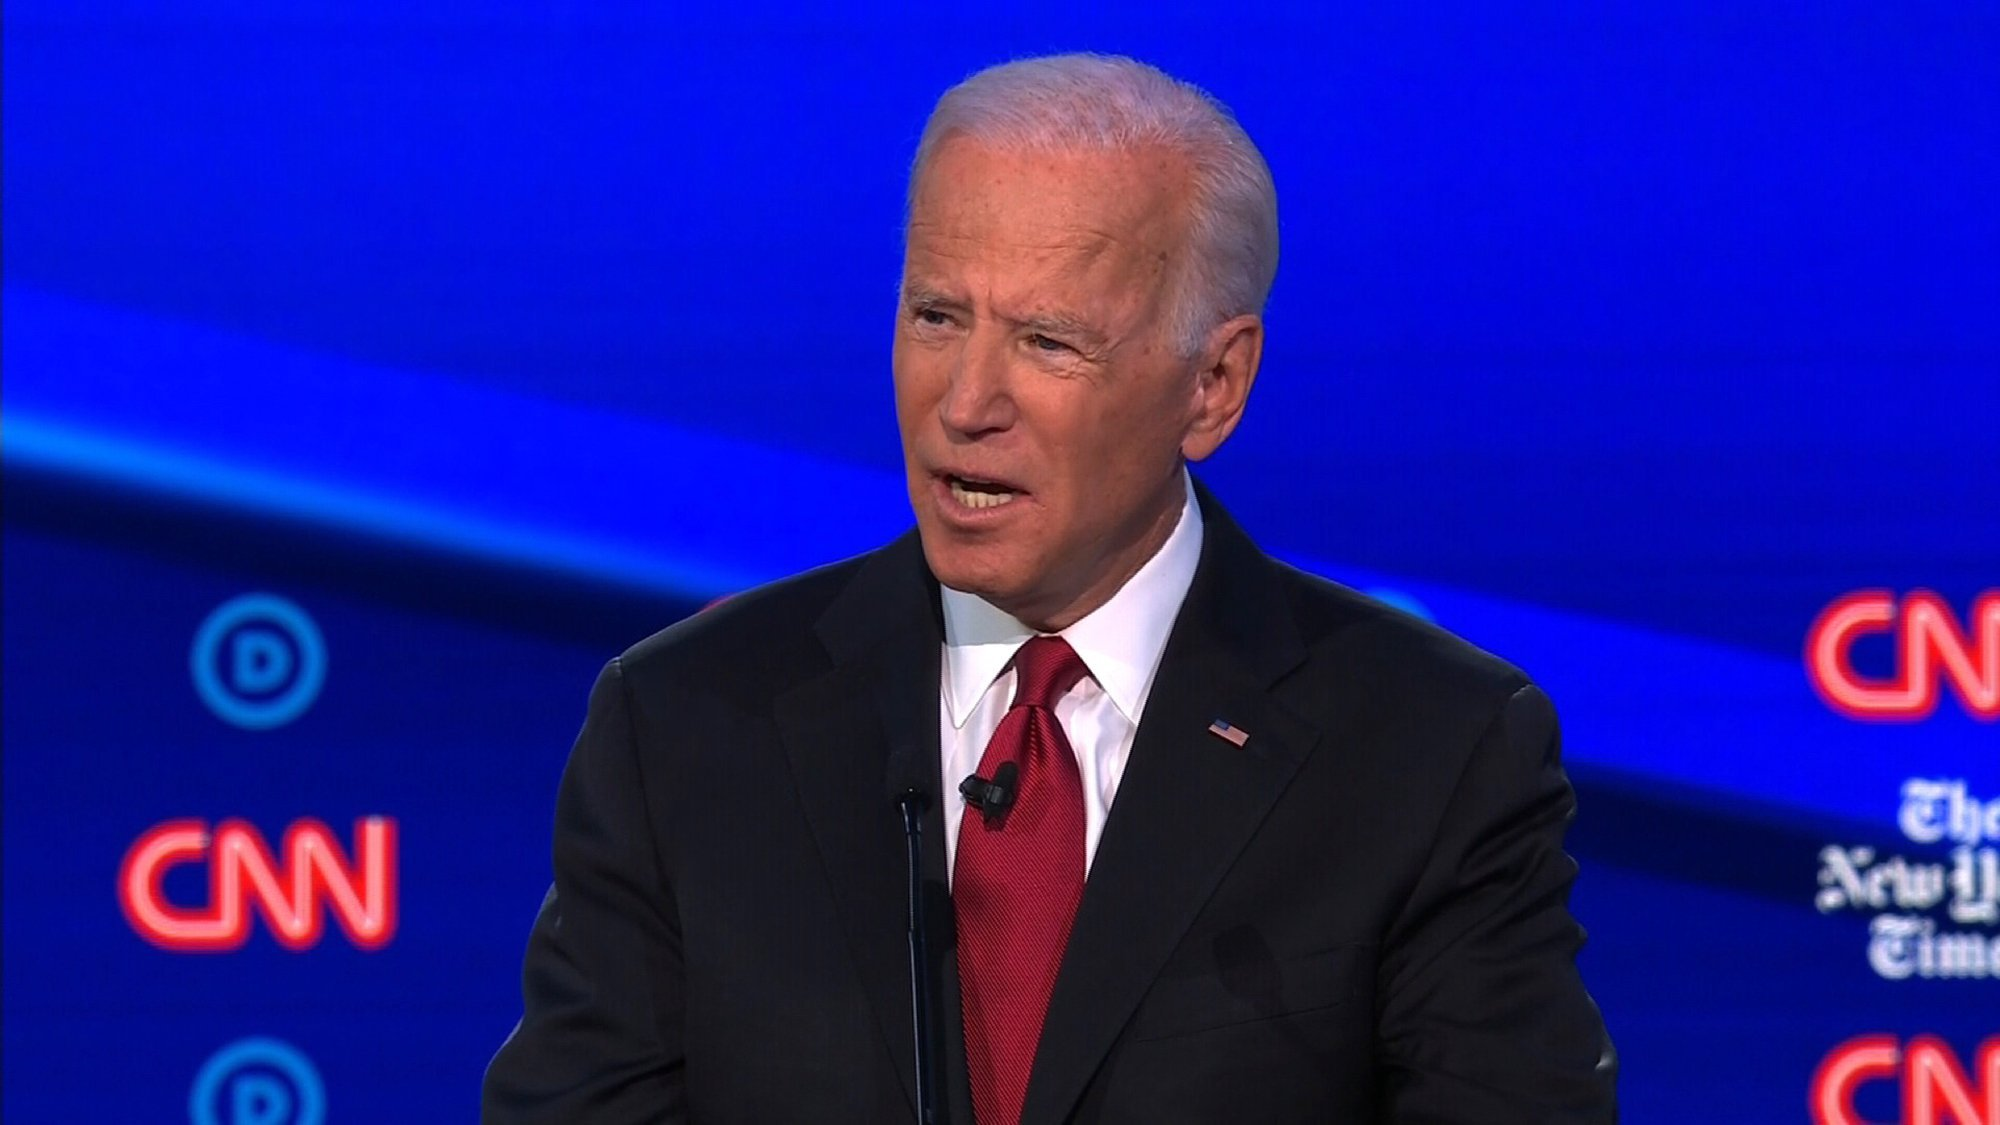 Joe Biden offers forceful defense of his son's Ukraine work at Democratic debate